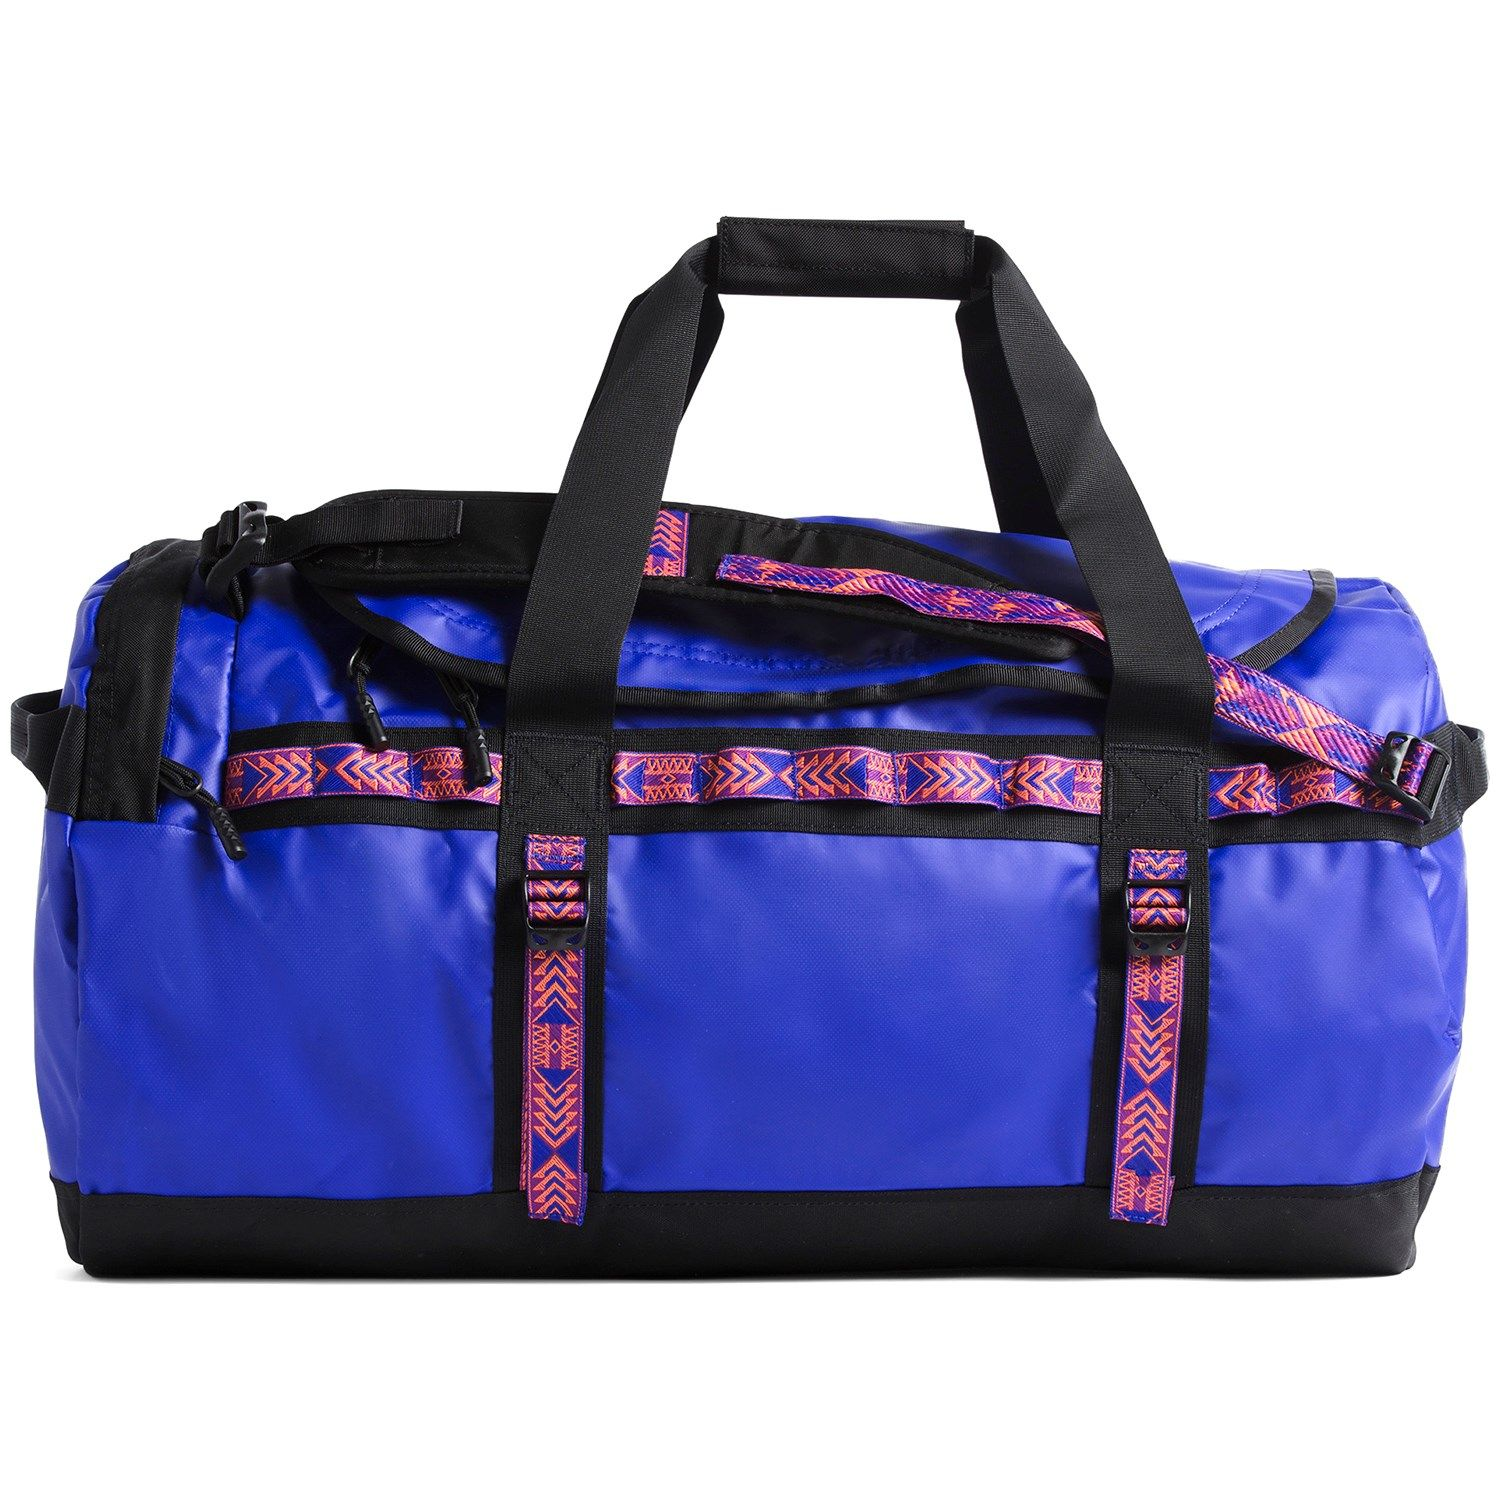 The North Face Base Camp Duffel Bag M Best Carry On Luggage Duffel Bag Bags